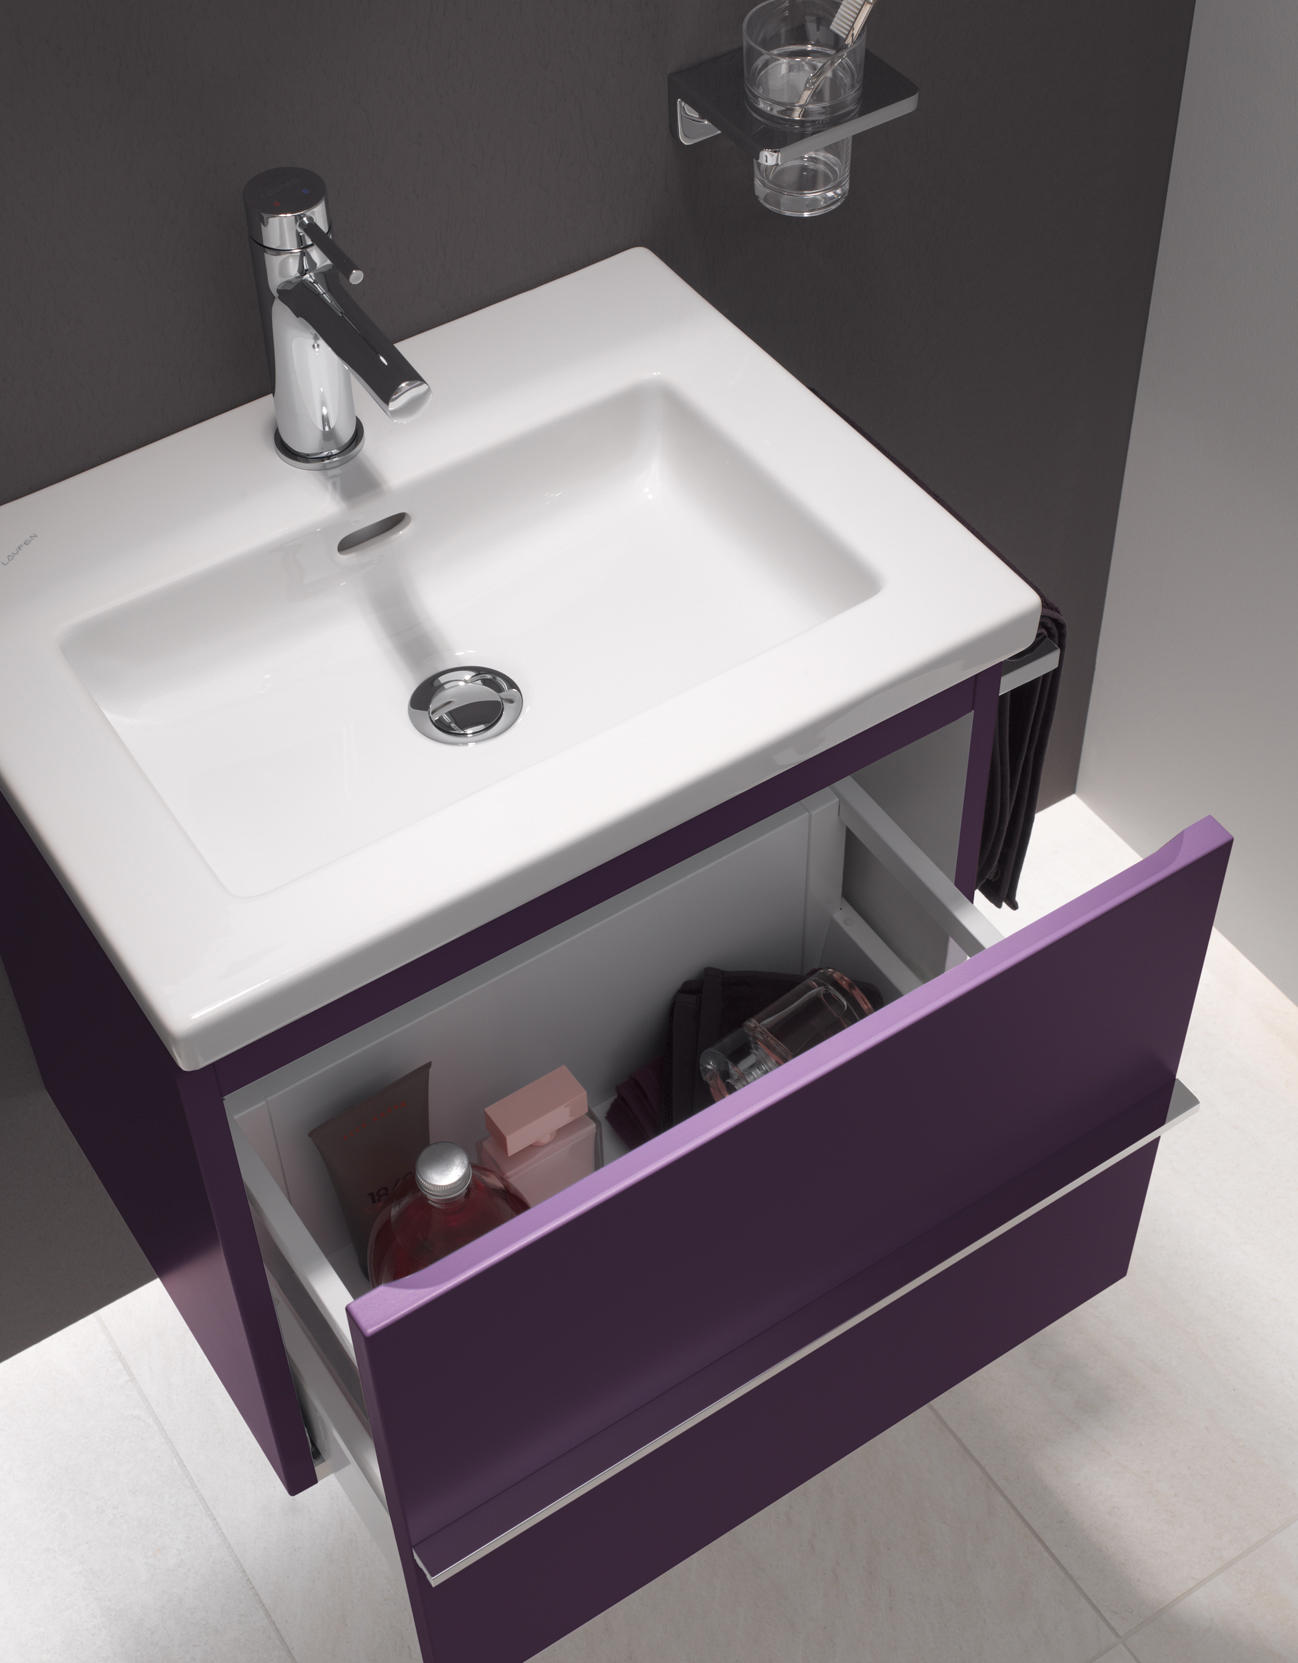 laufen pro s vanity unit vanity units from laufen architonic. Black Bedroom Furniture Sets. Home Design Ideas